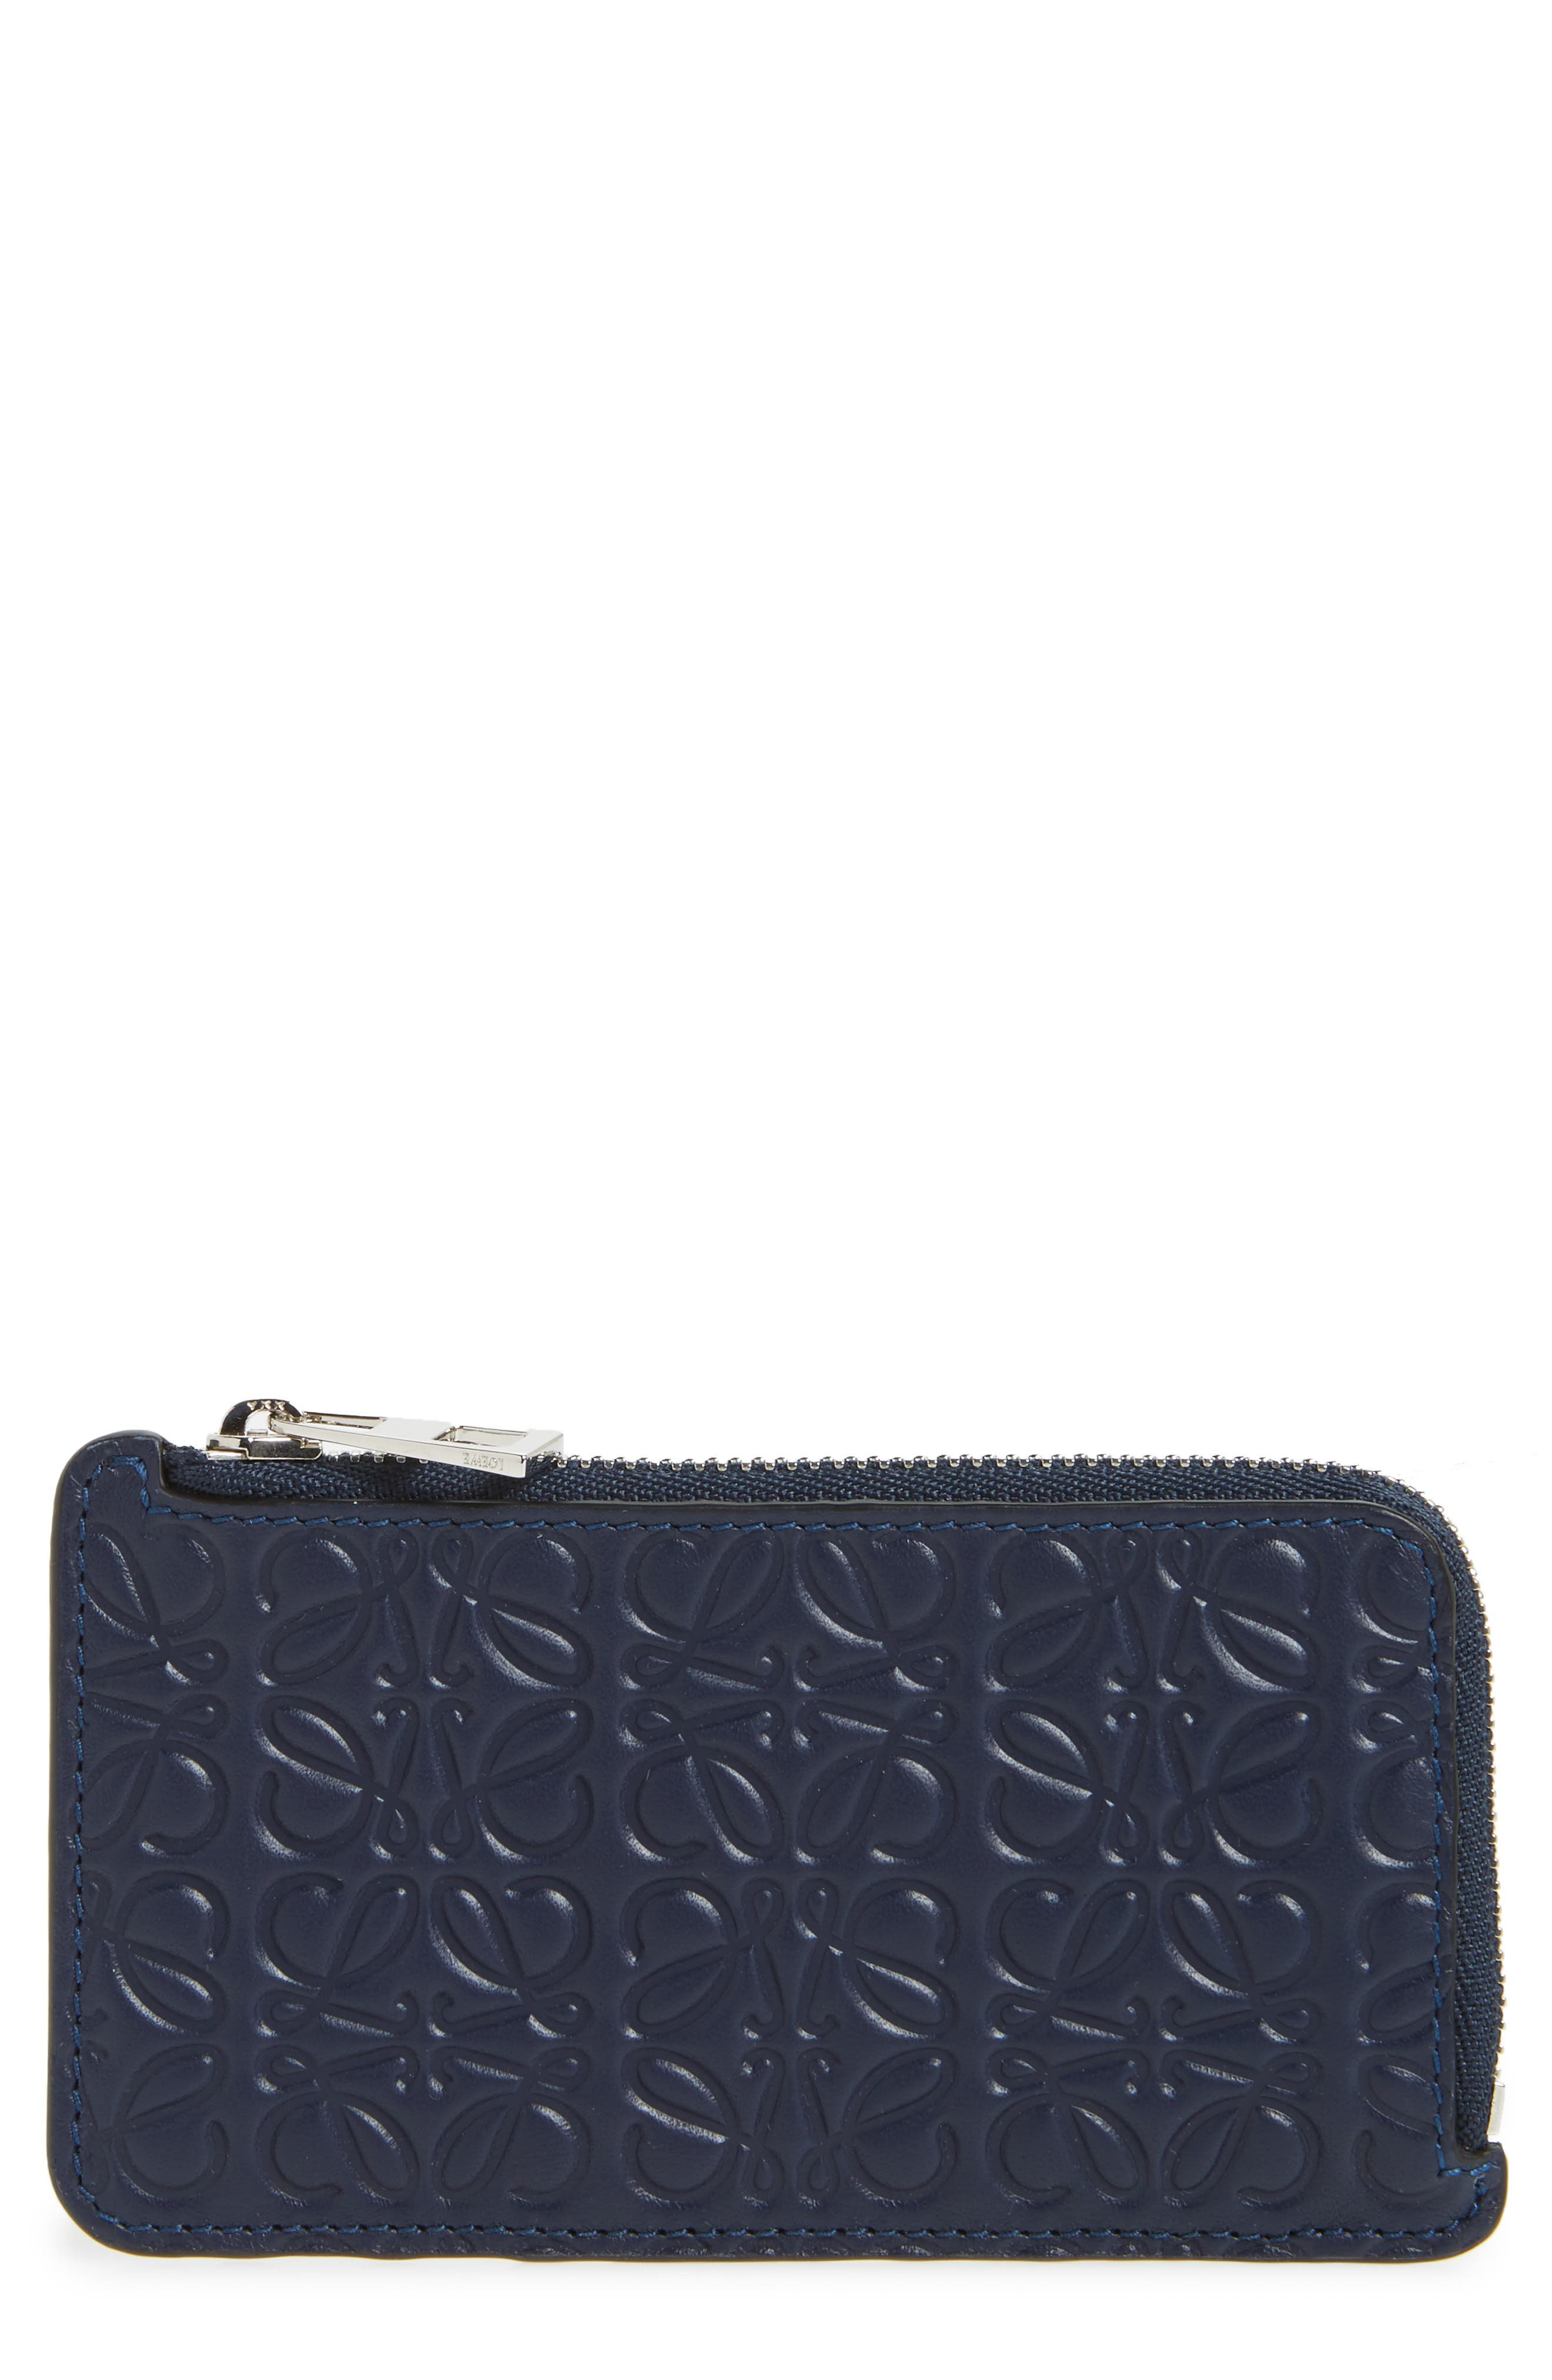 Coin & Card Zip Pouch,                         Main,                         color, Navy Blue